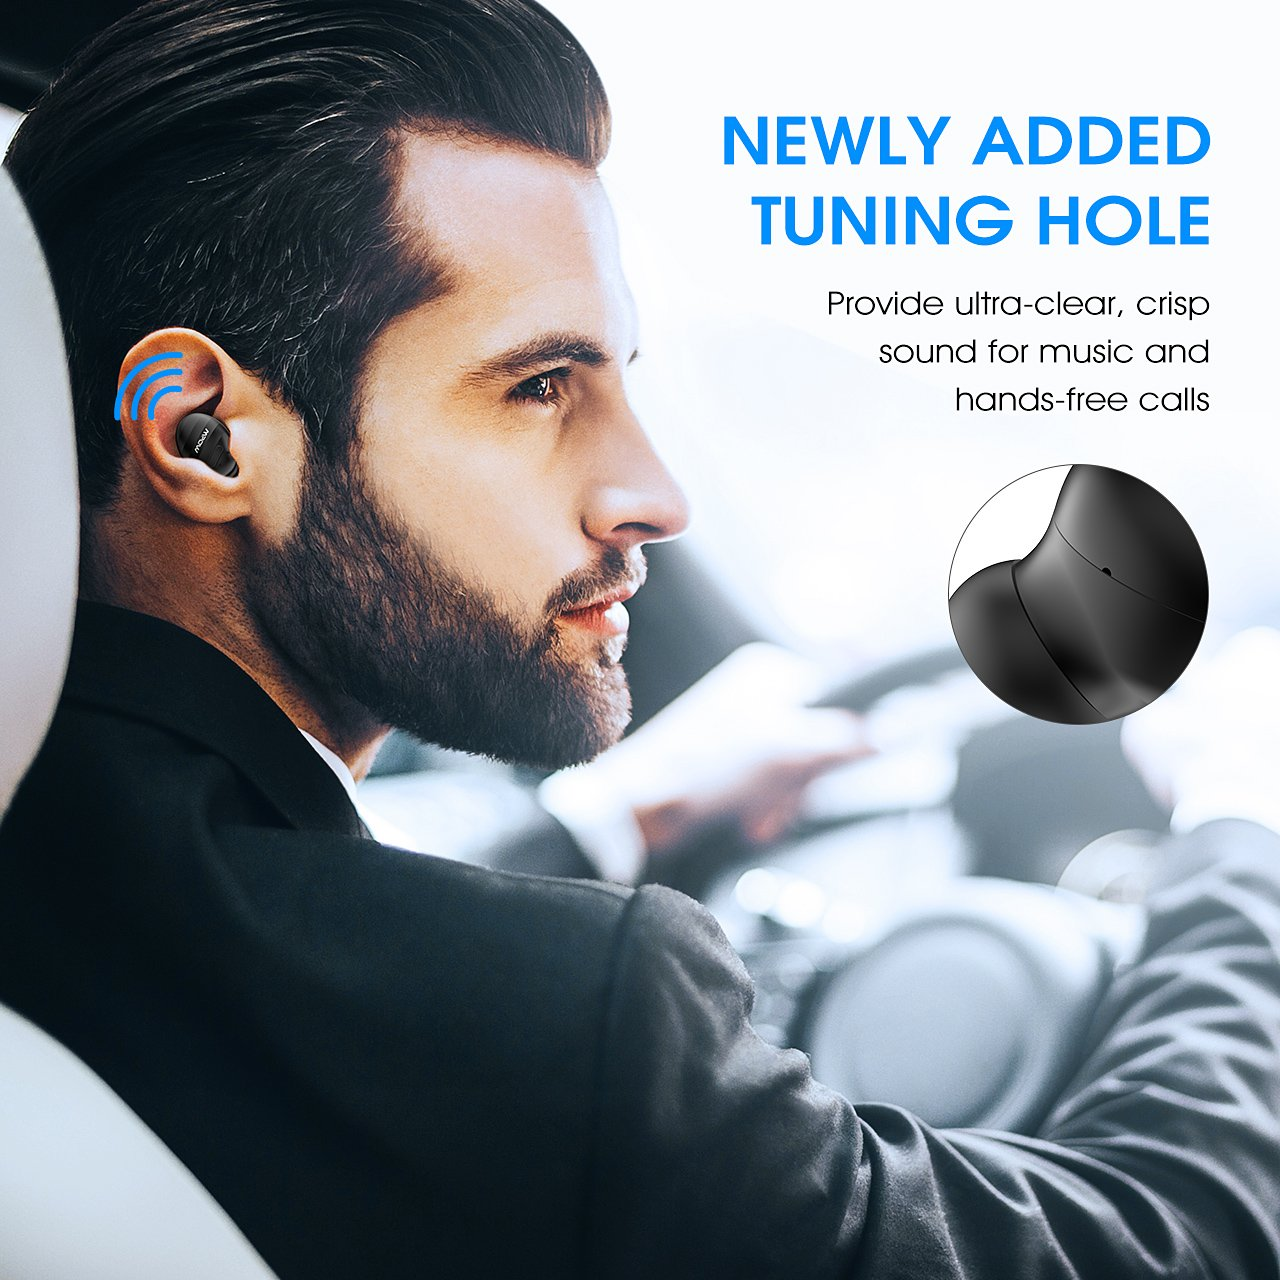 483bad07f3a Mpow EM6 Single Mini Bluetooth Earbud, V4.1 Wireless Earbud with Mic,  Invisible Headphone with 6 Hour Playtime, Car Bluetooth Headset for iPhone  Android ...